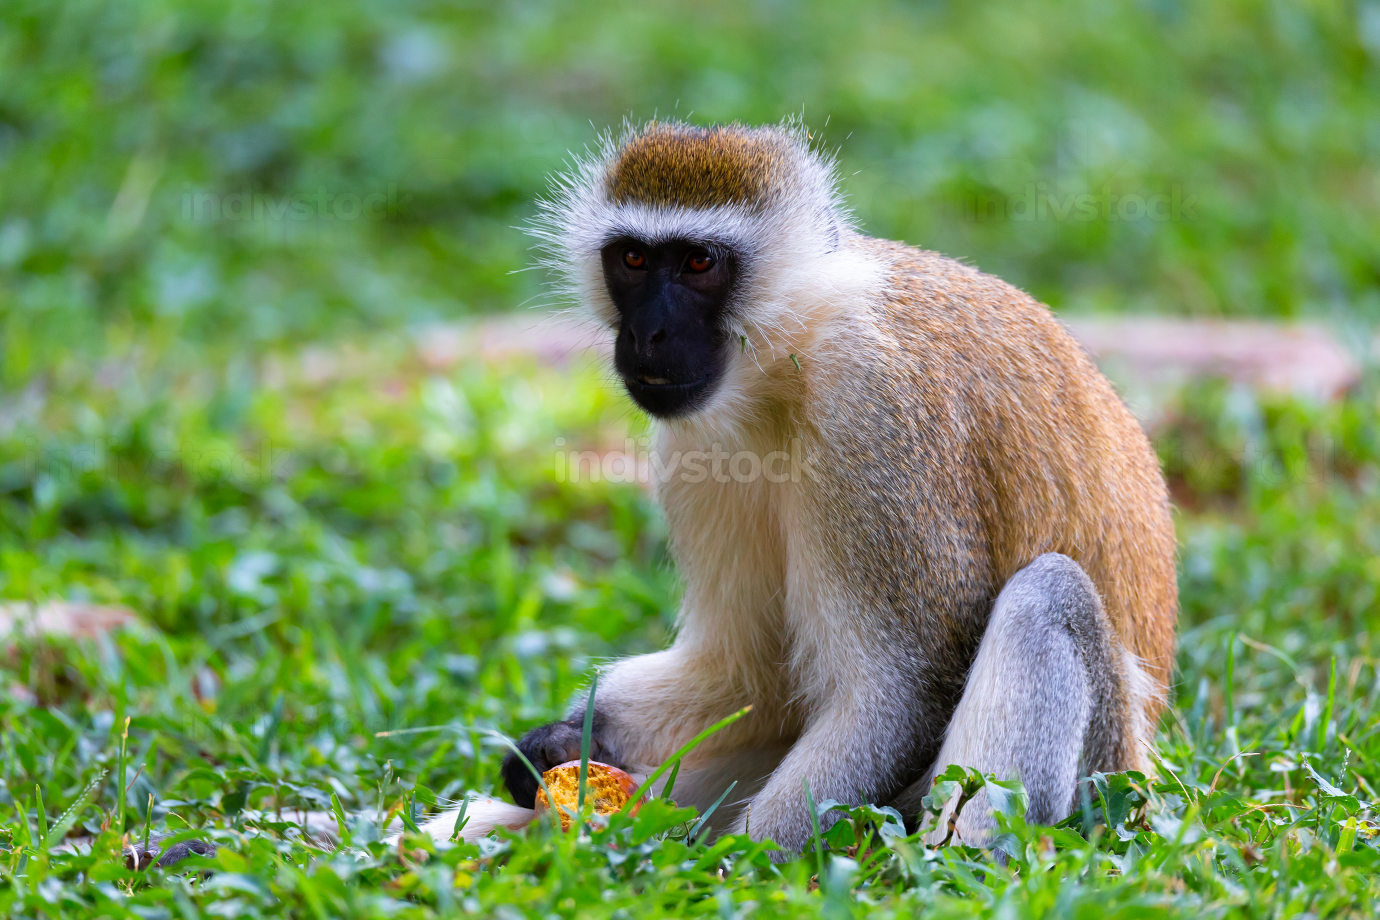 Monkey is doing a fruit meal in the grass